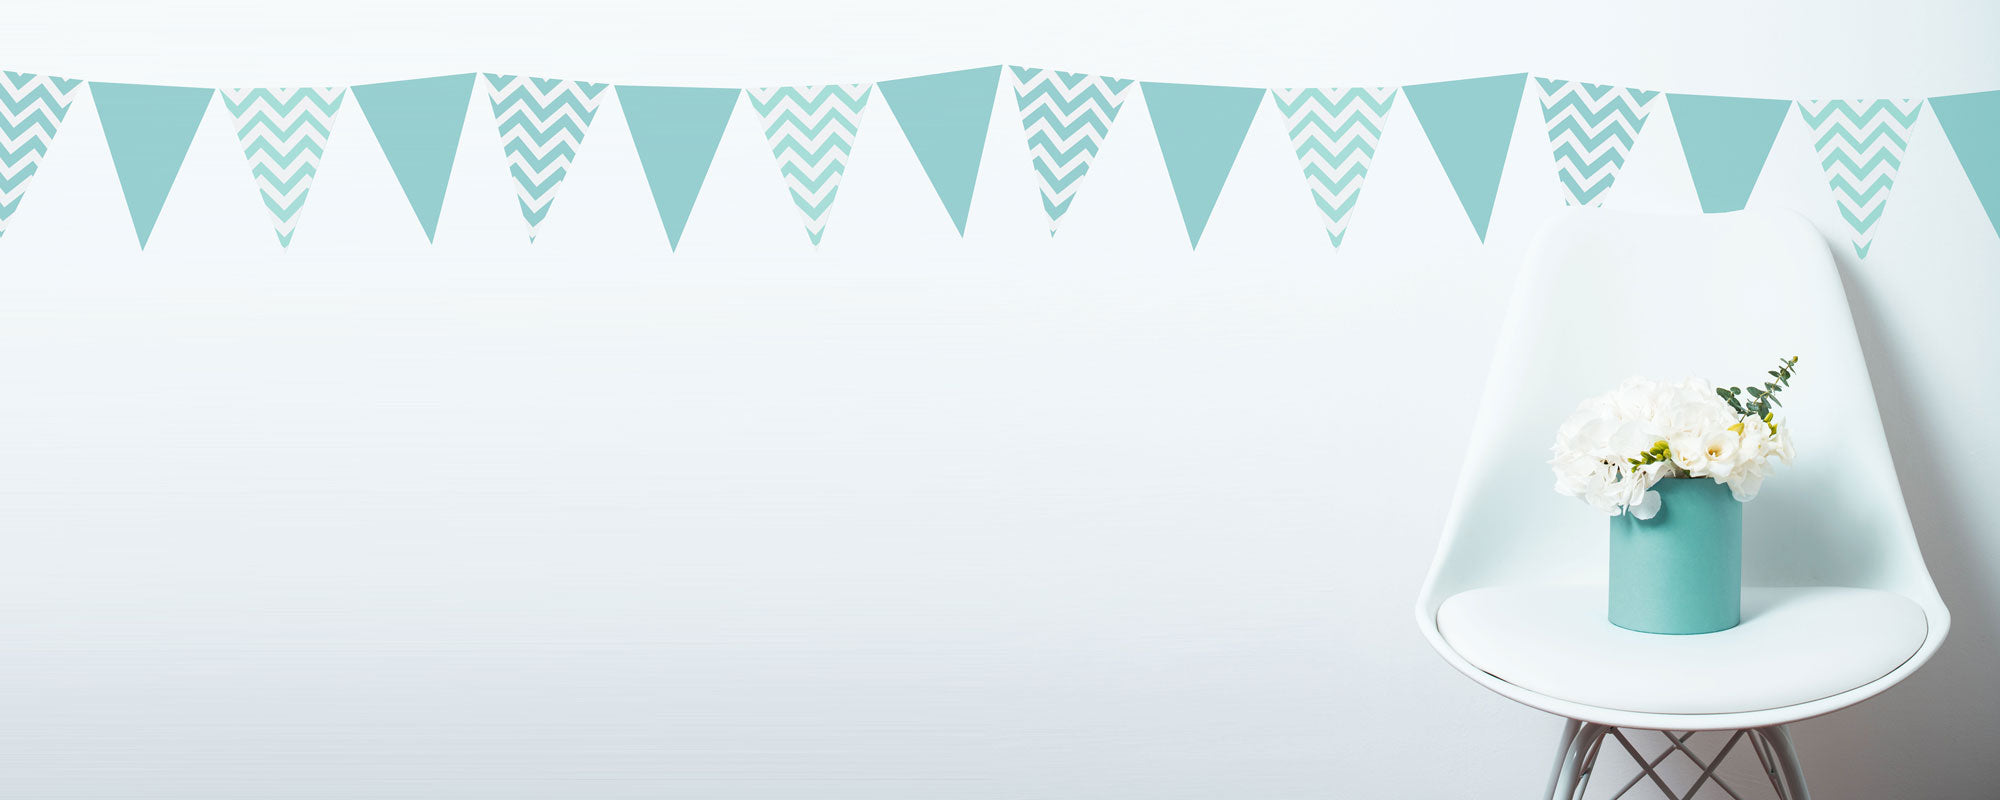 bunting stencils to mix and match from the stencil studio